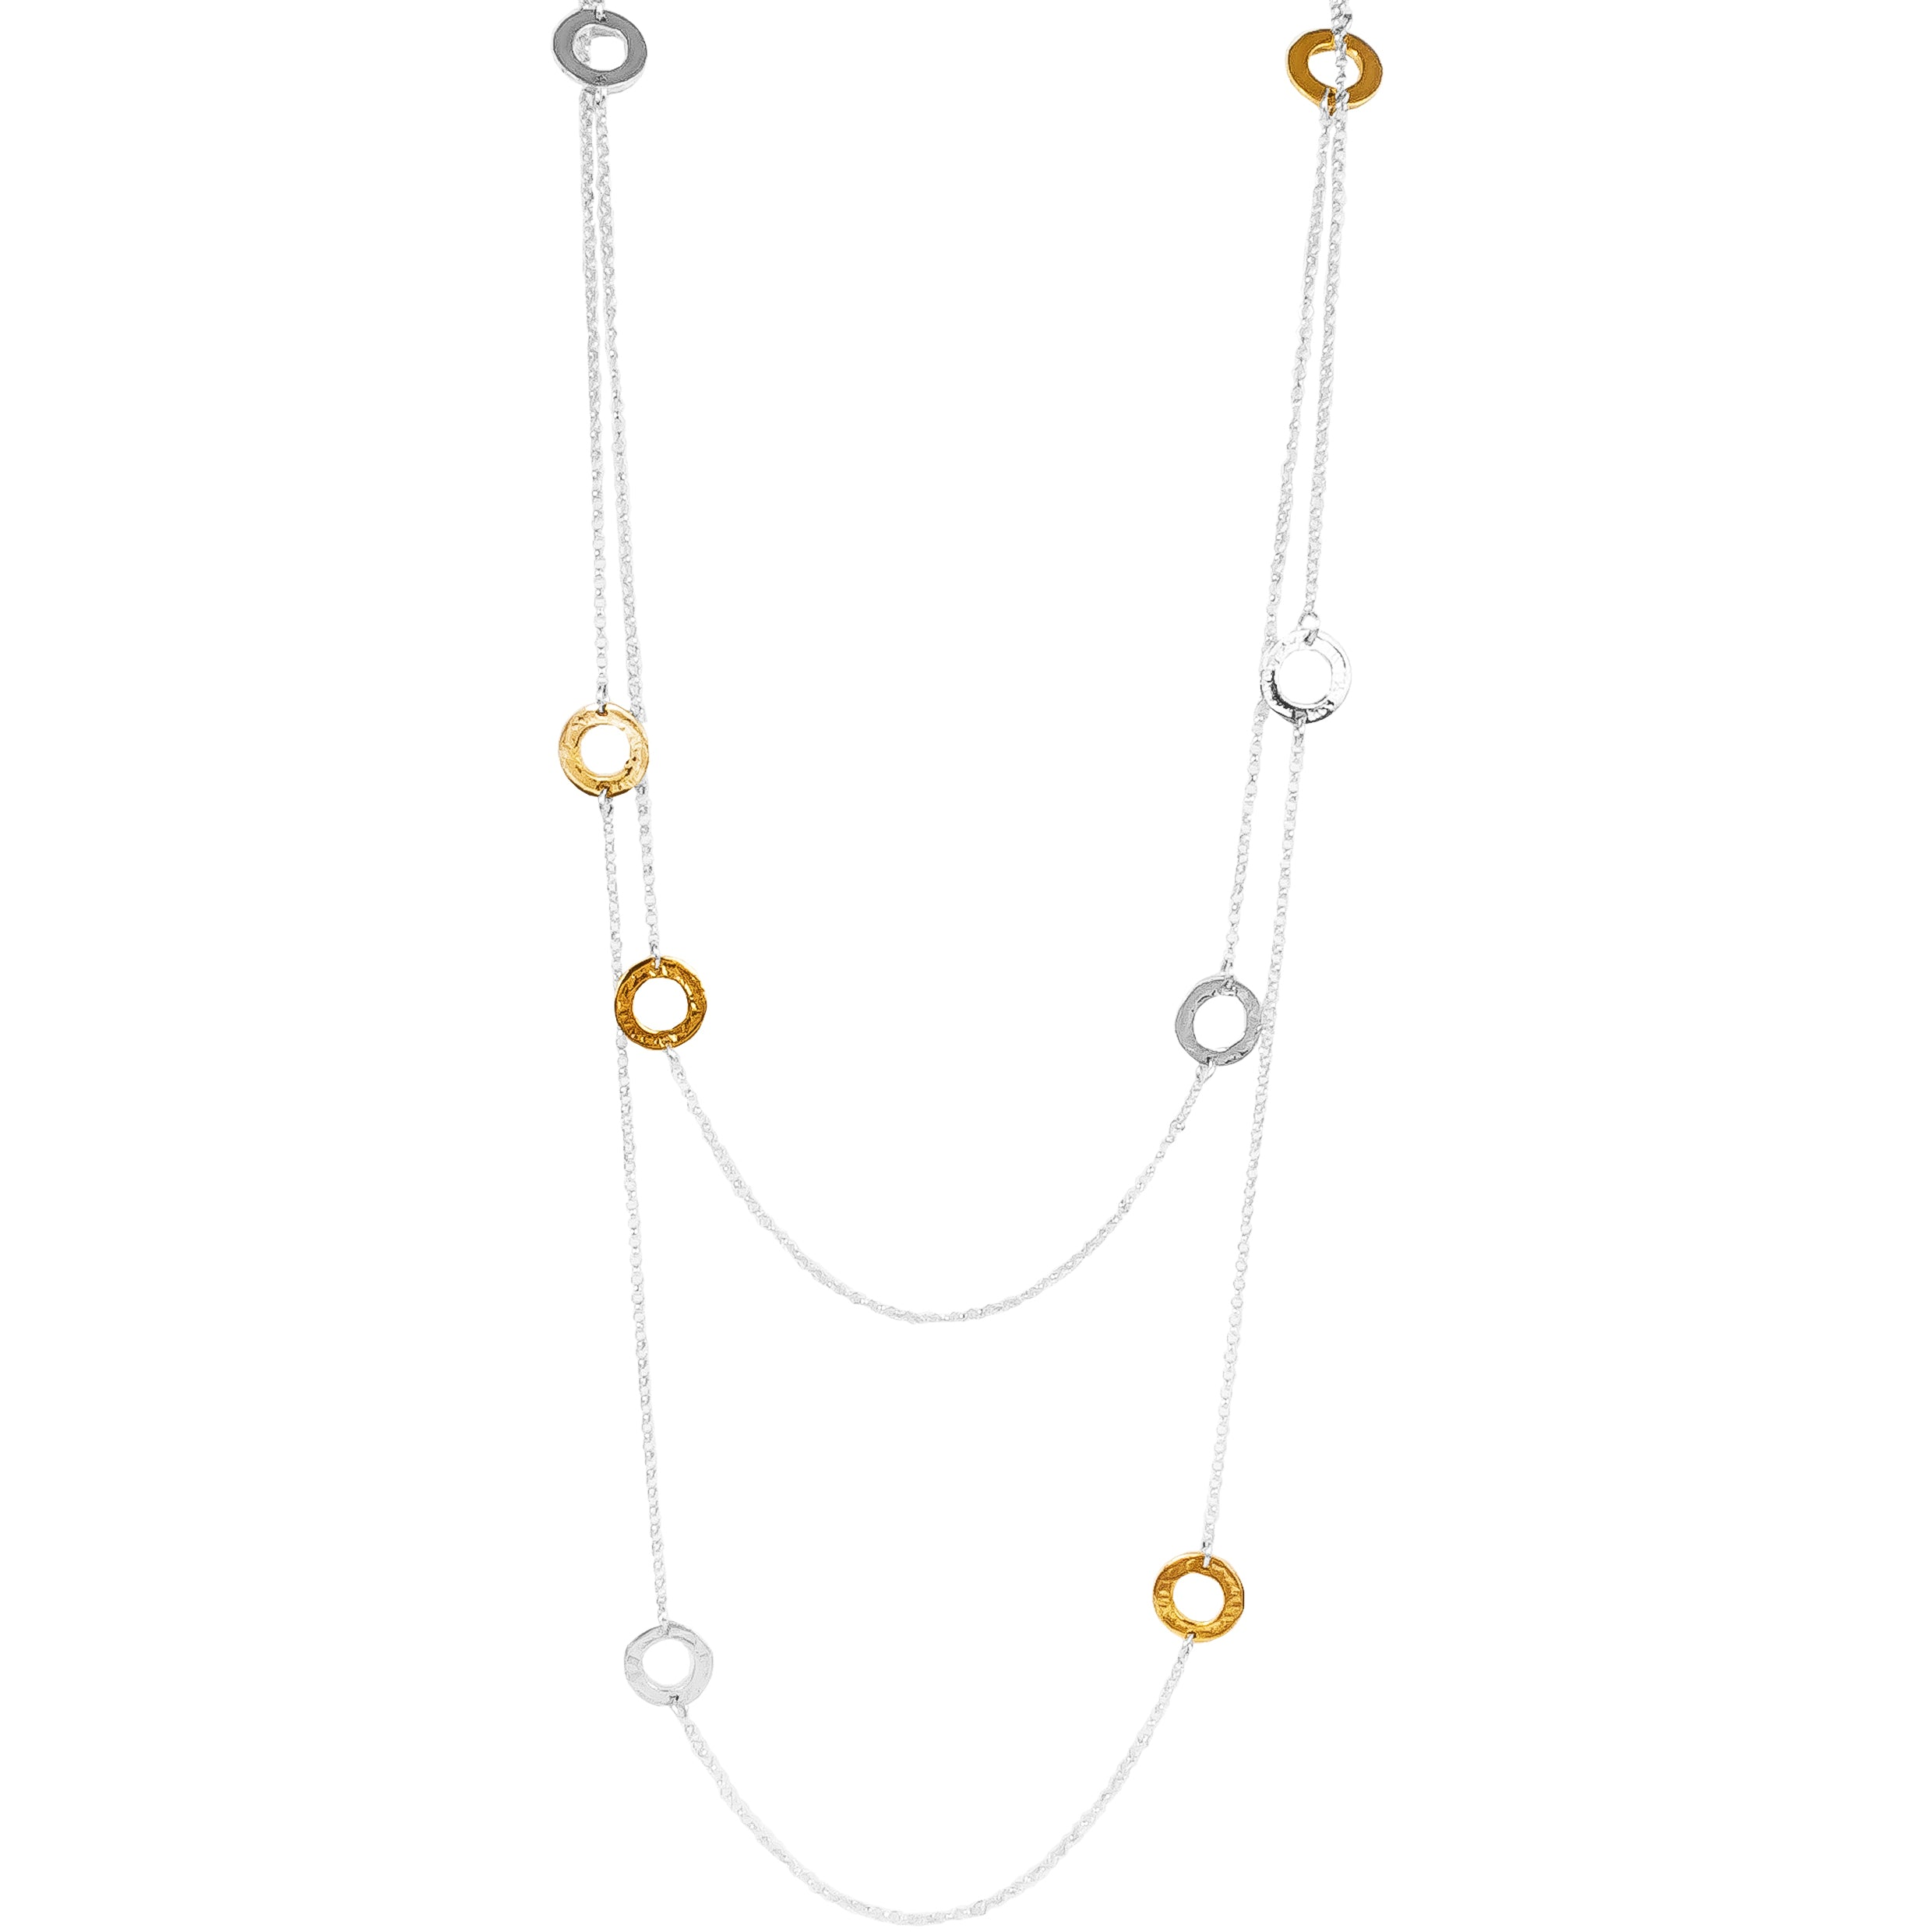 Chloe Necklace - Long | Hammered Silver & Gold Detail